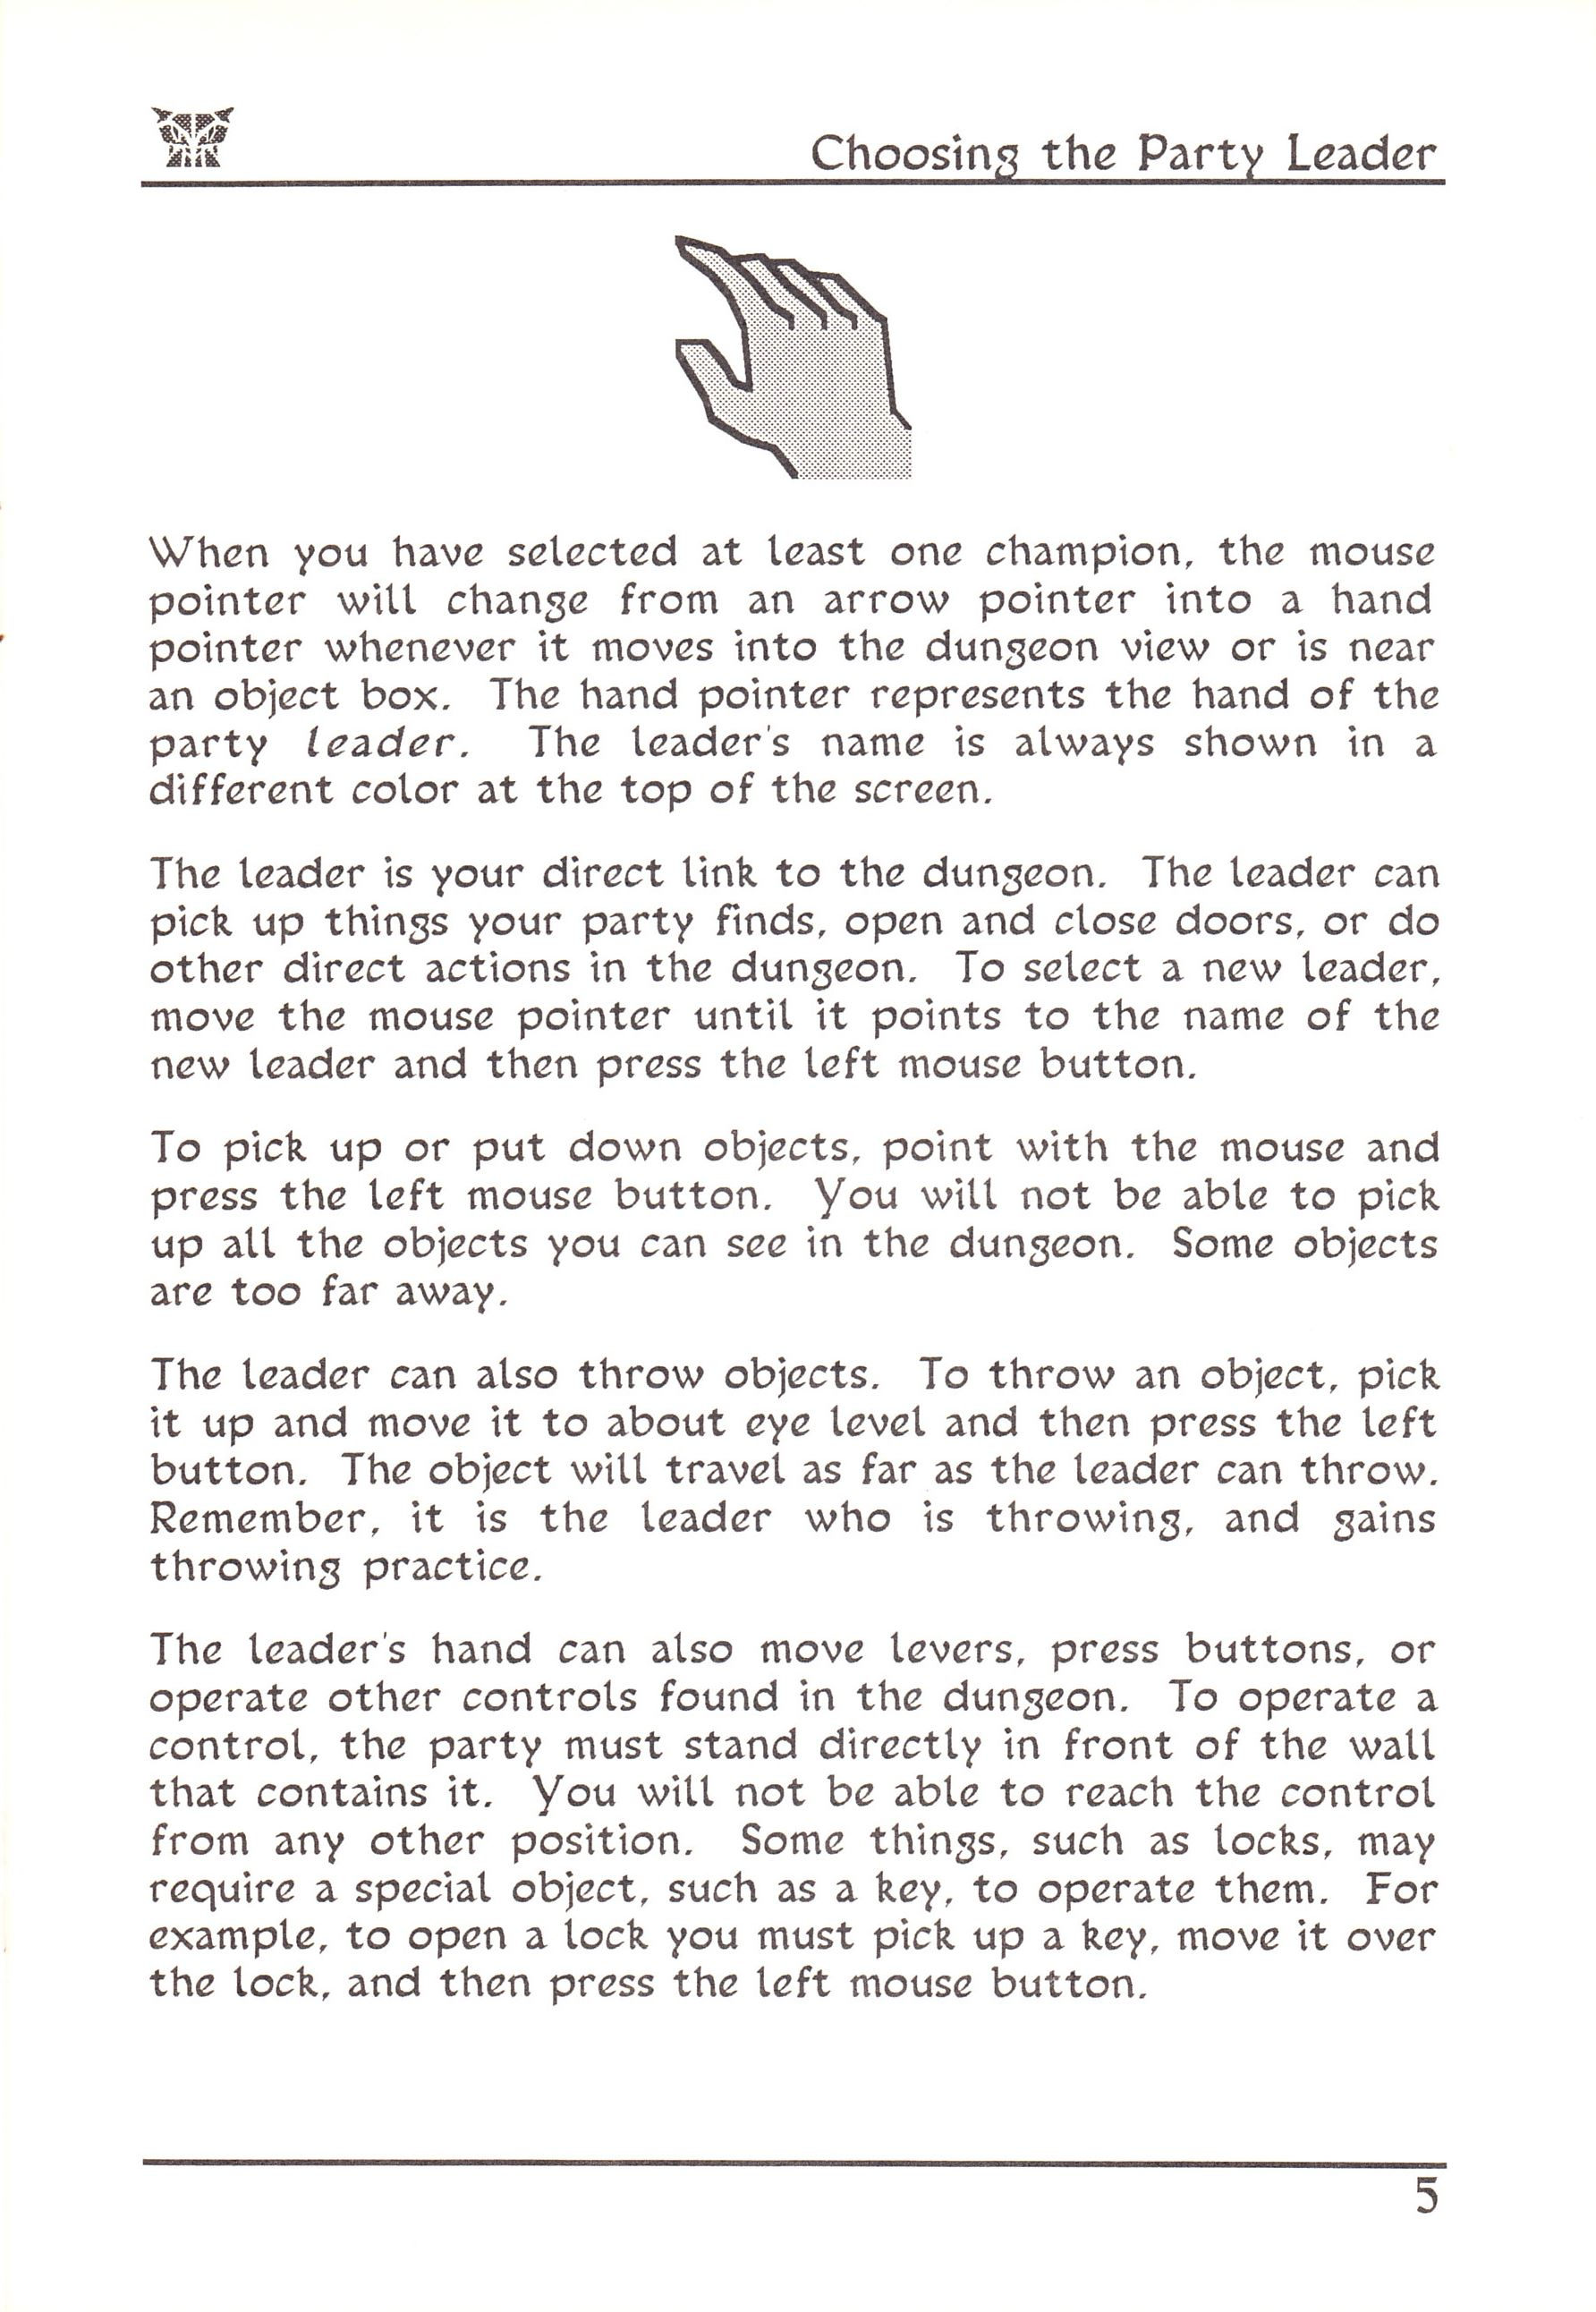 Game - Dungeon Master - US - Atari ST - Early Box - Manual - Page 029 - Scan